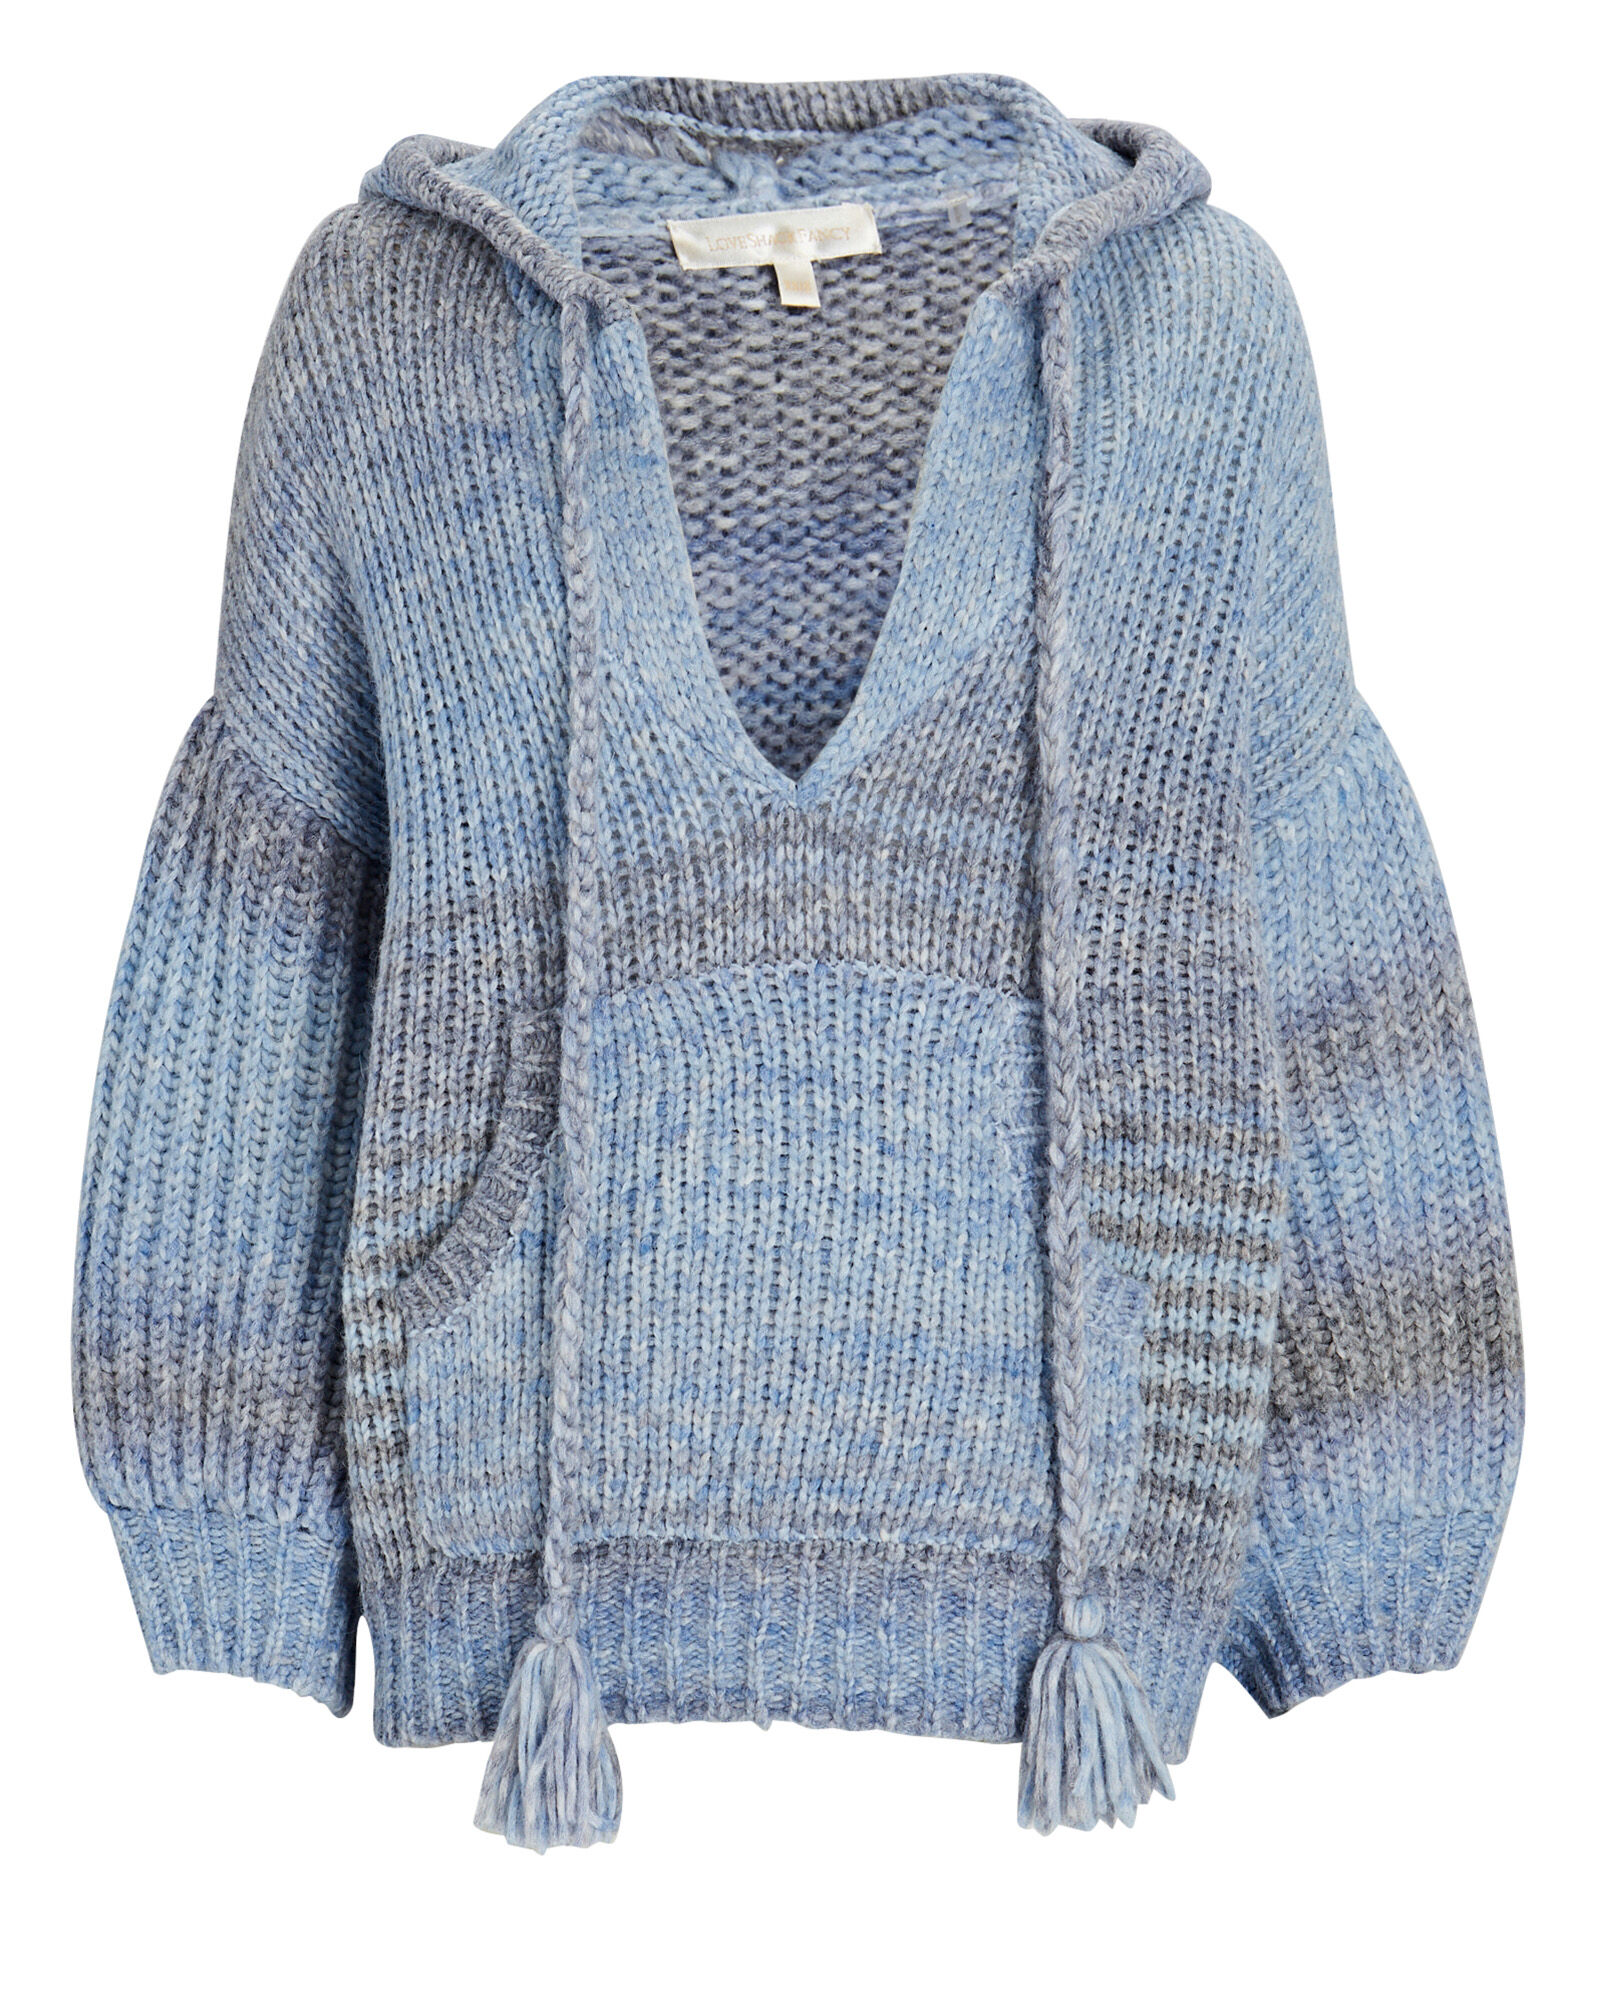 Remington Ombré Hooded Sweater, BLUE-MED, hi-res